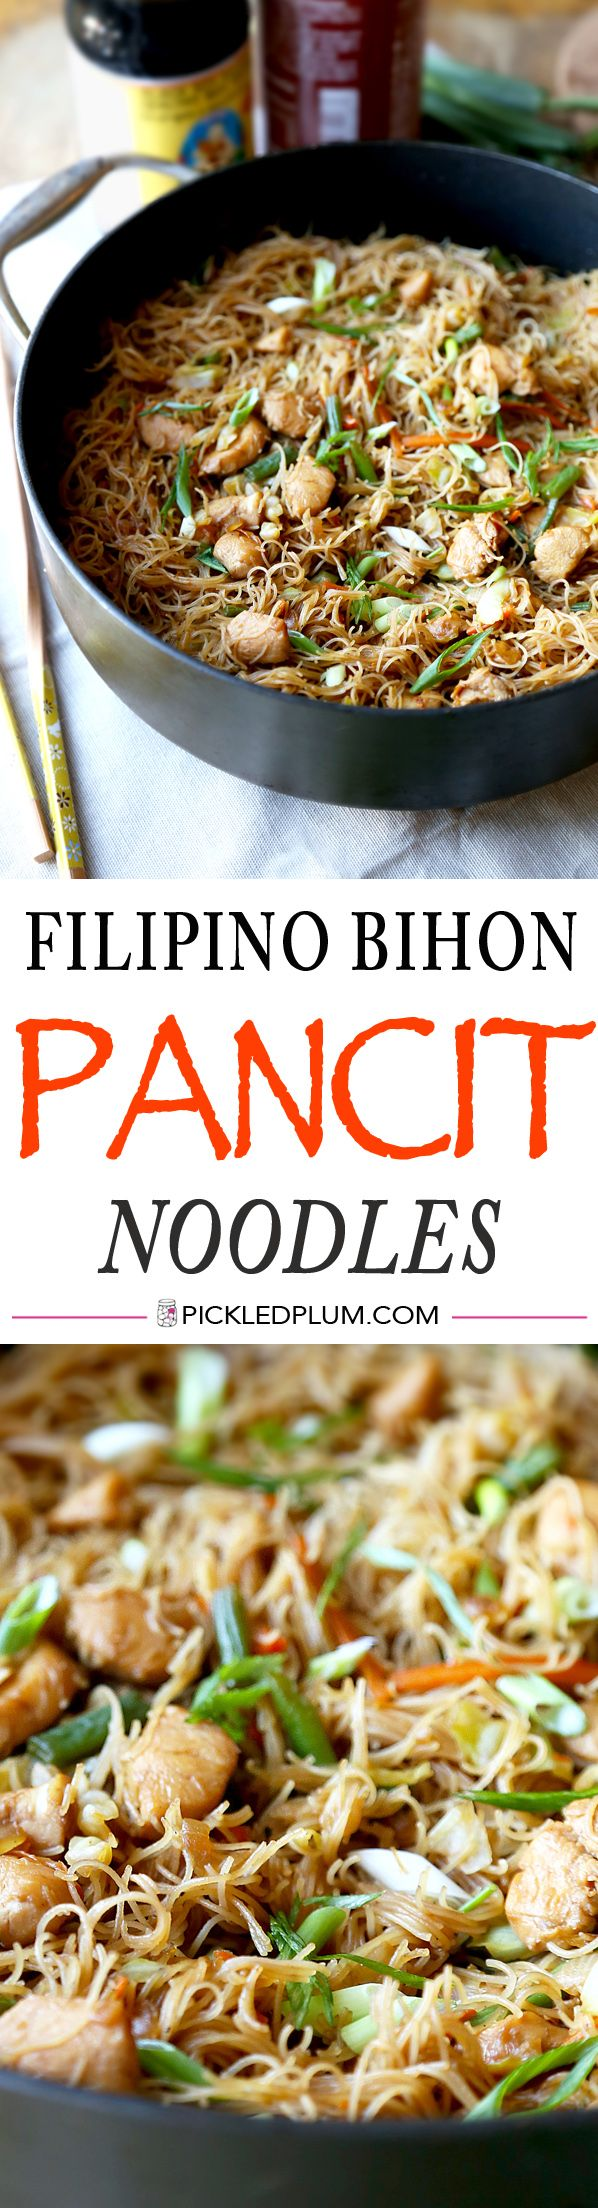 2279 best filipino foods recipes images on pinterest filipino bihon pancit recipe filipino forumfinder